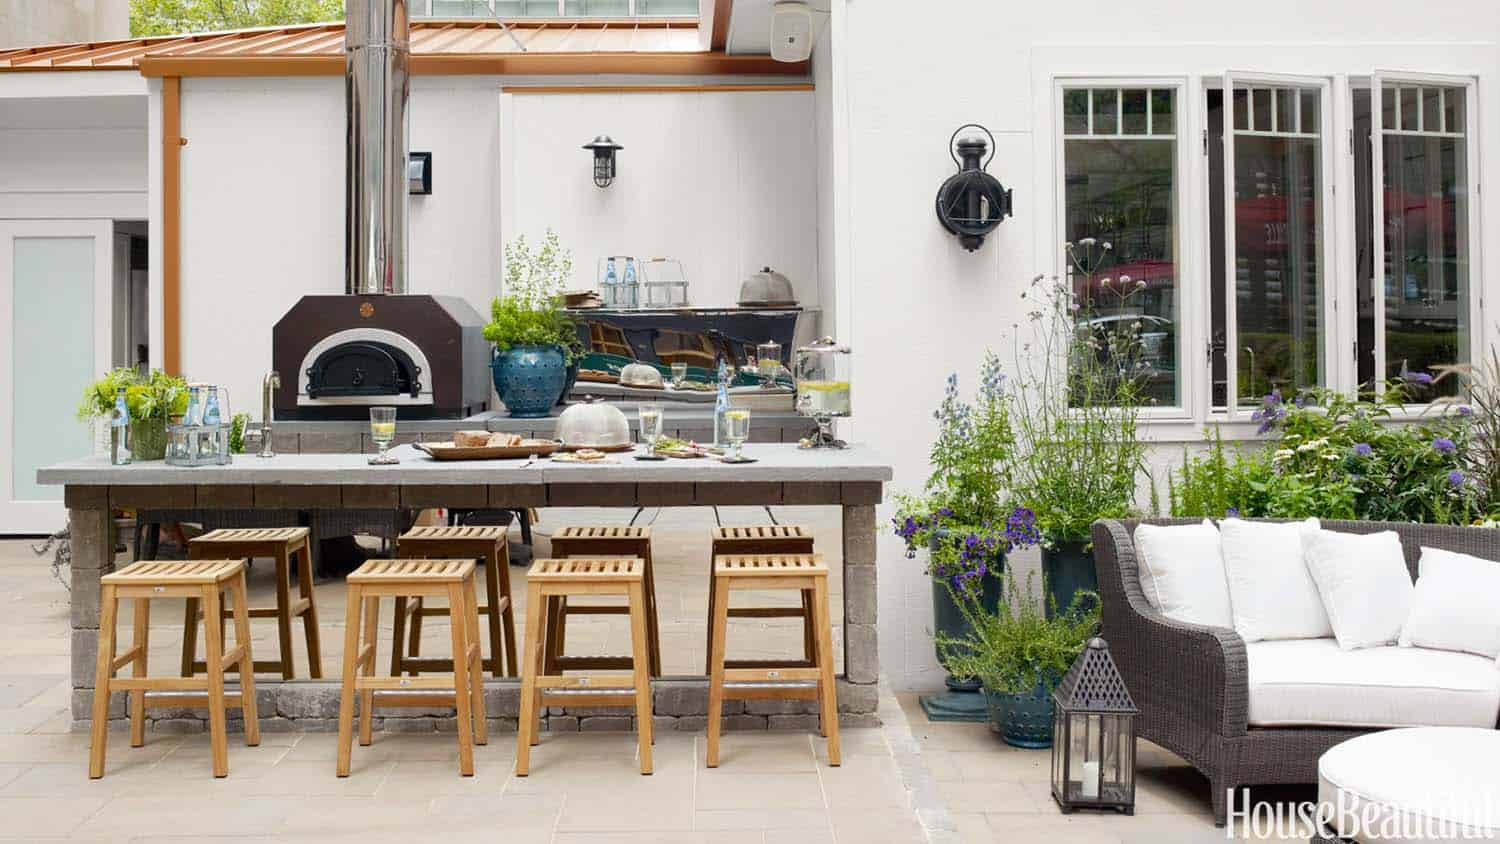 Outdoor Kitchens-Bars Entertaining-23-1 Kindesign.jpg